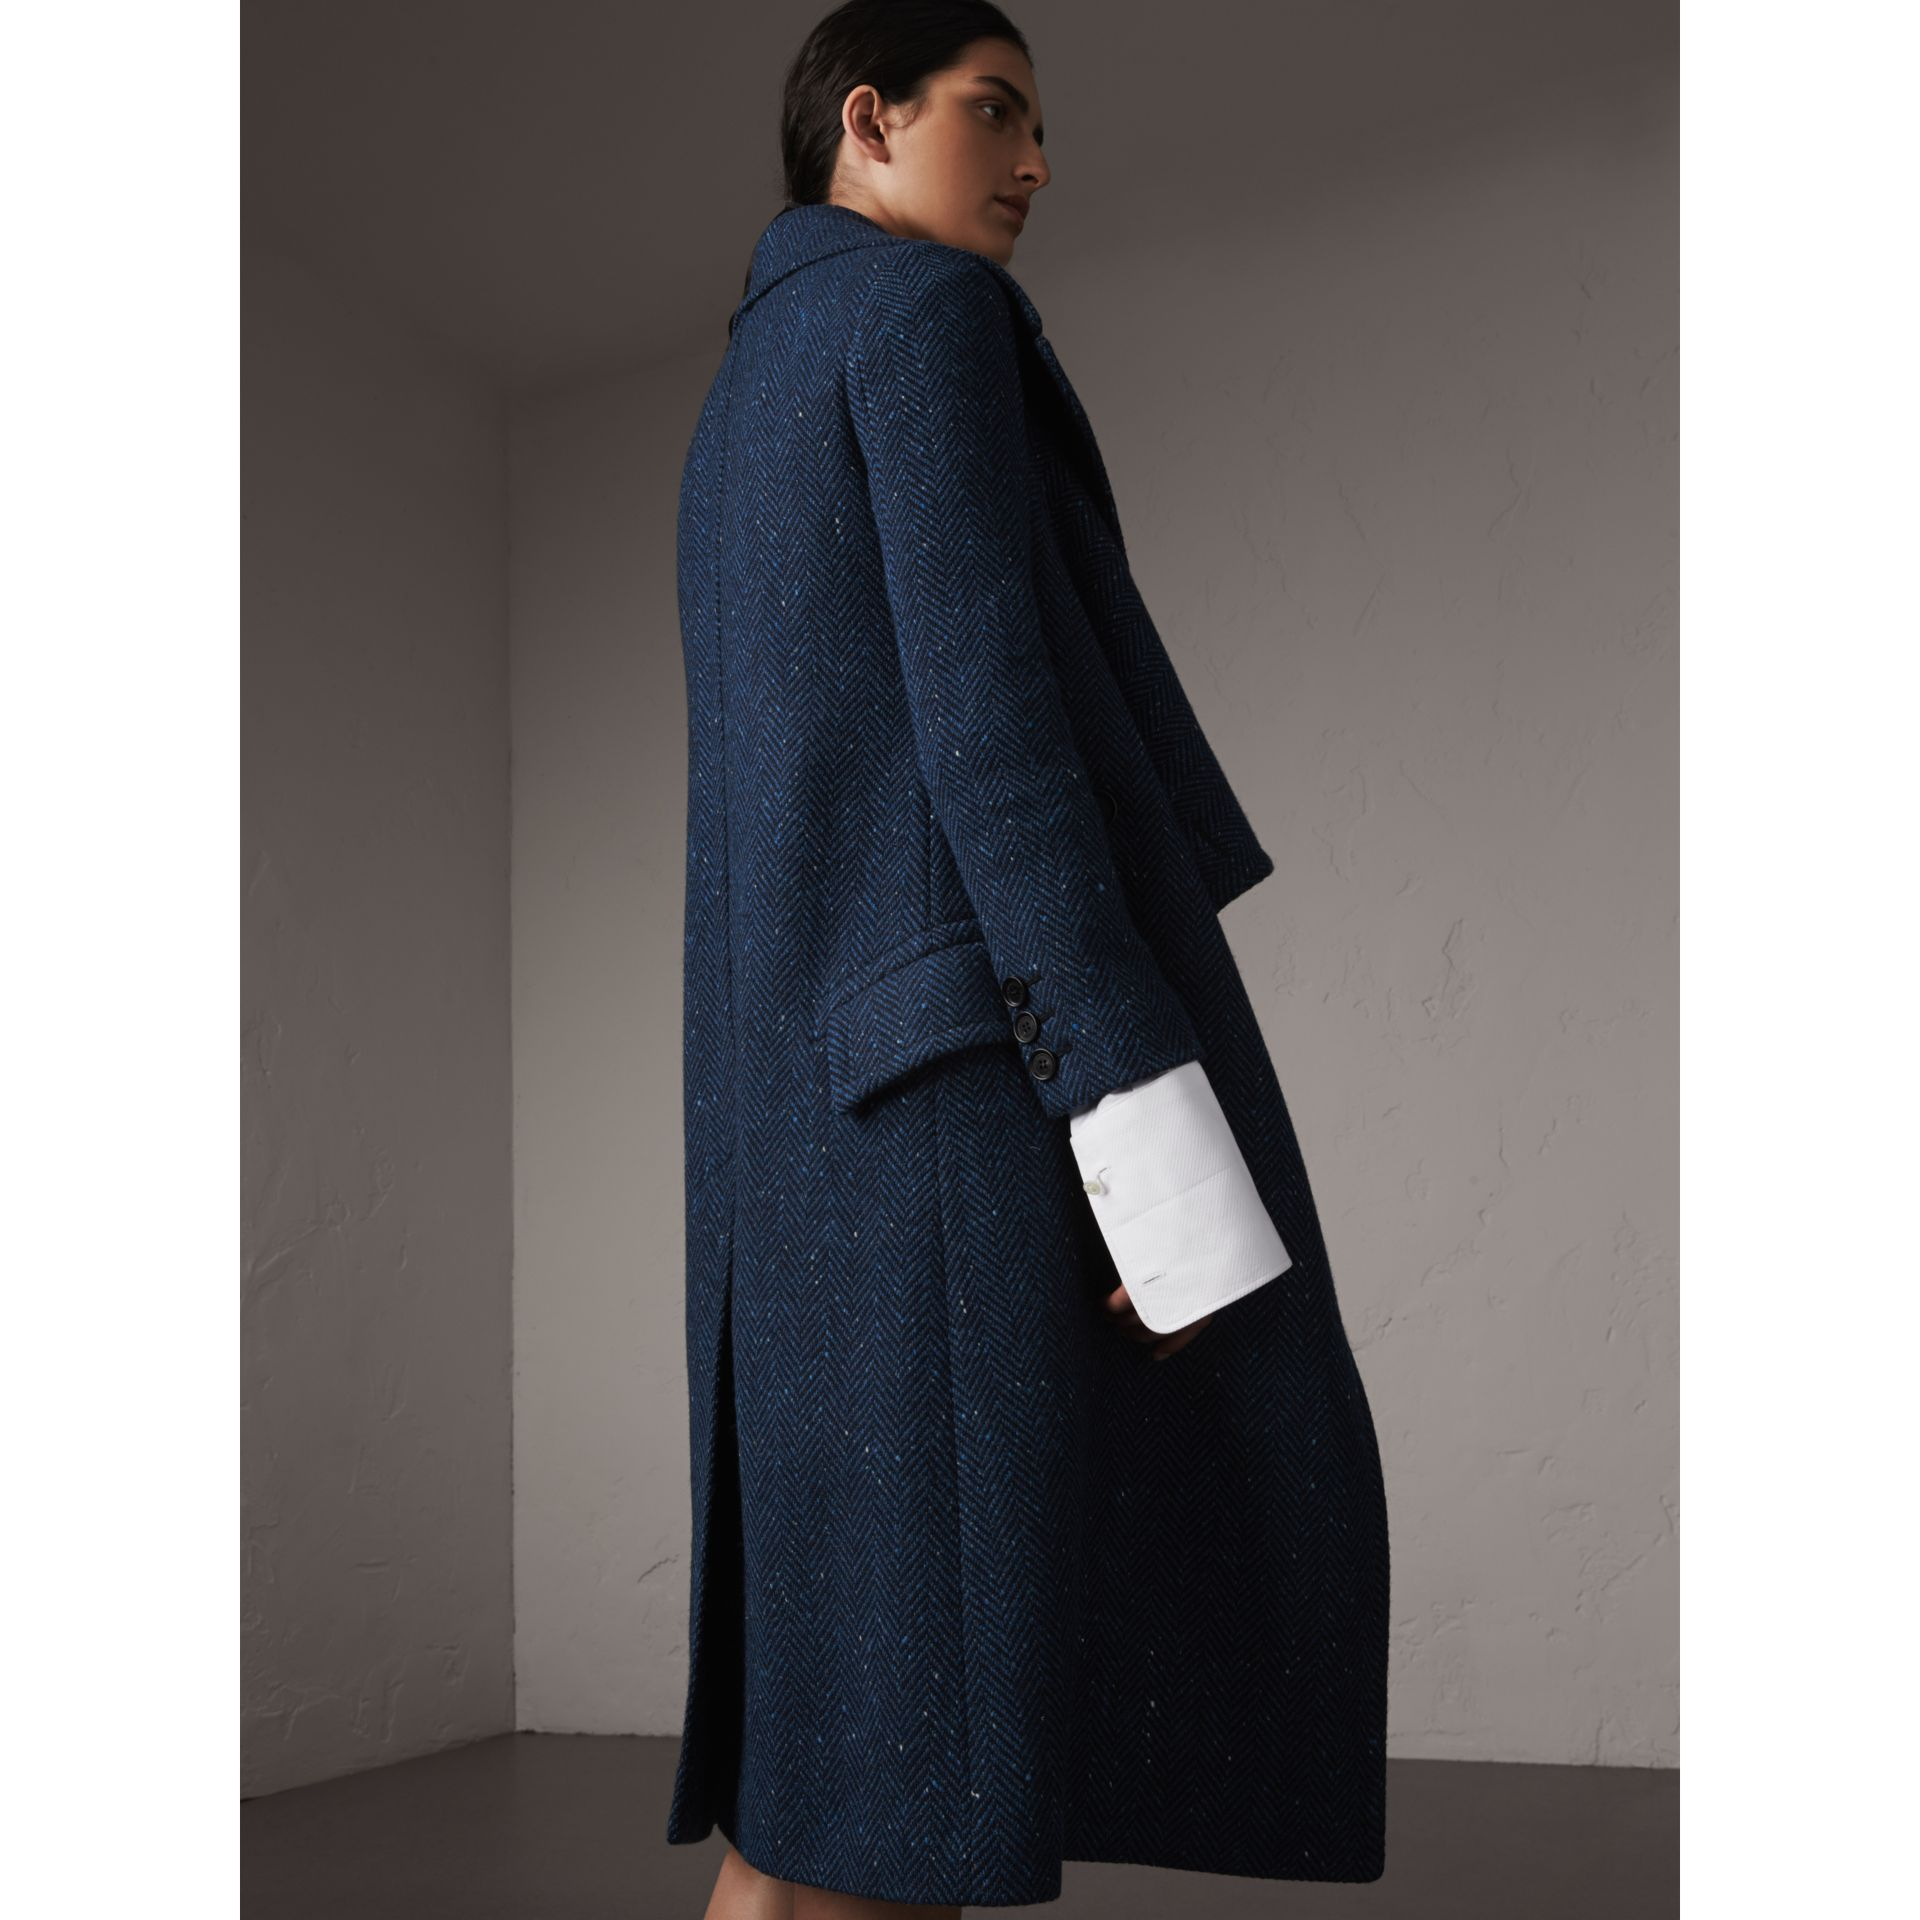 Herringbone Wool Cashmere Tweed Asymmetric Coat in Navy - Women | Burberry - gallery image 3